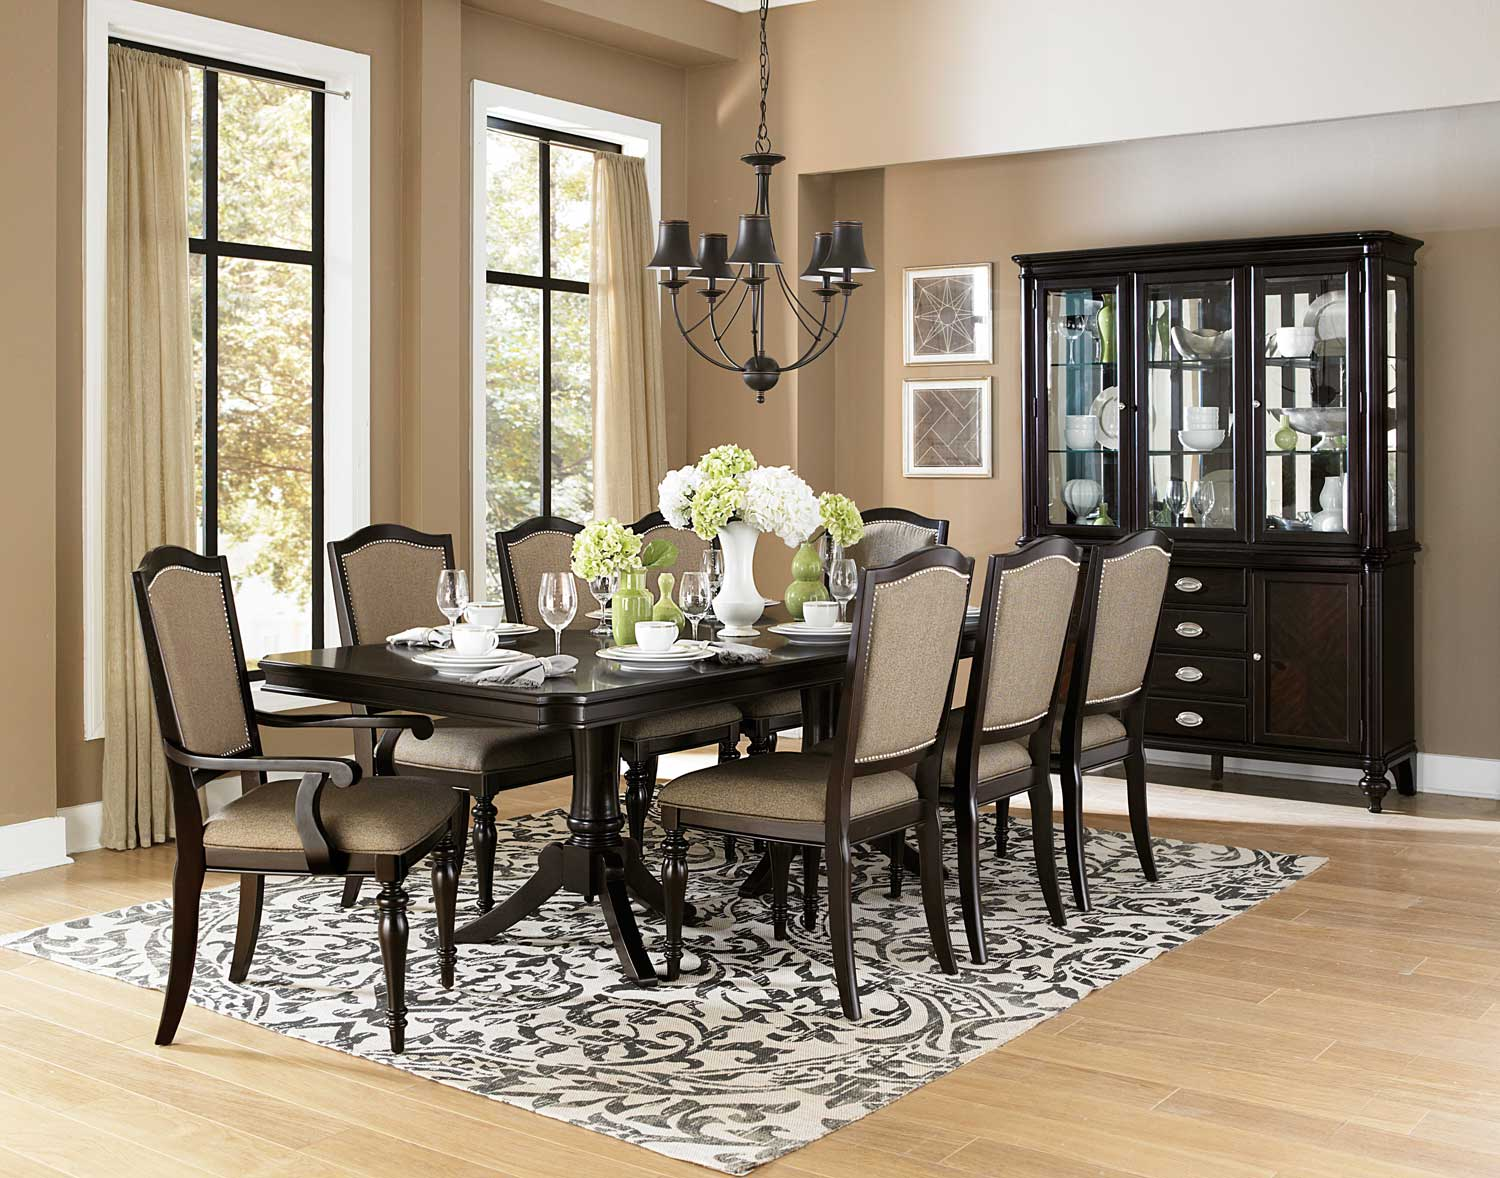 Homelegance Marston Double Pedestal Dining Set - Neutral tone fabric - Dark Cherry